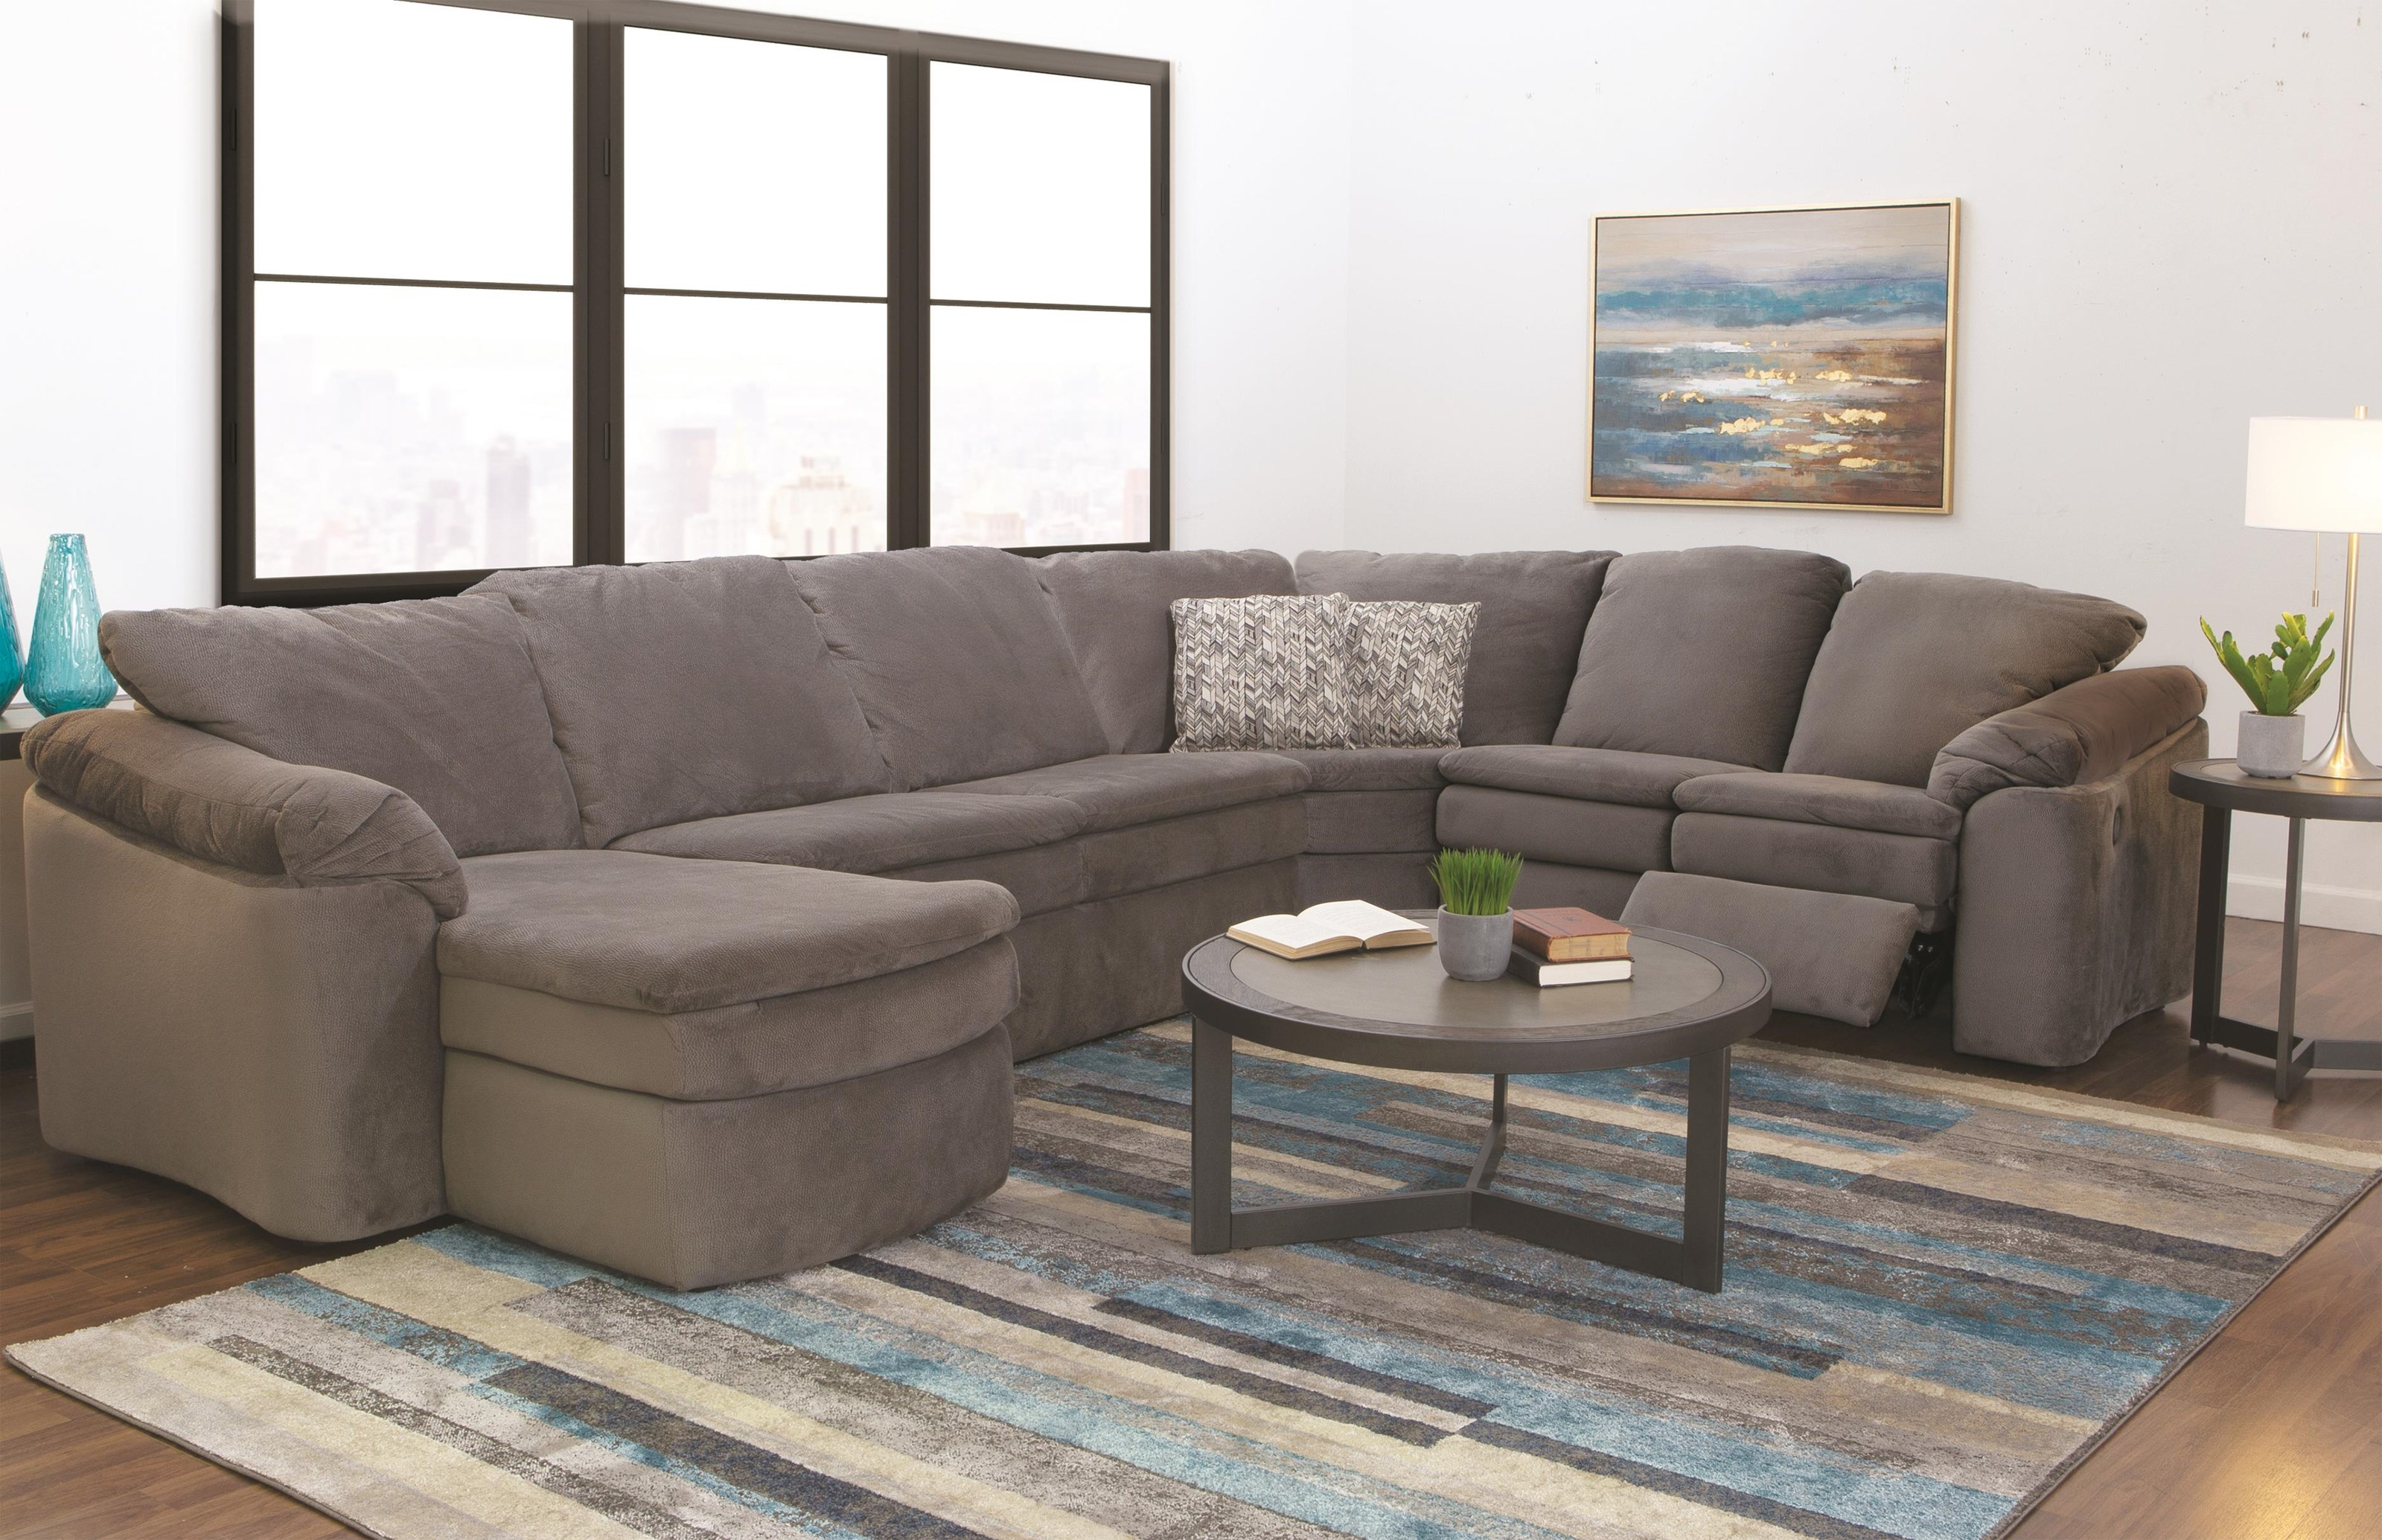 Seneca Falls Sectional Sofa by England at Darvin Furniture